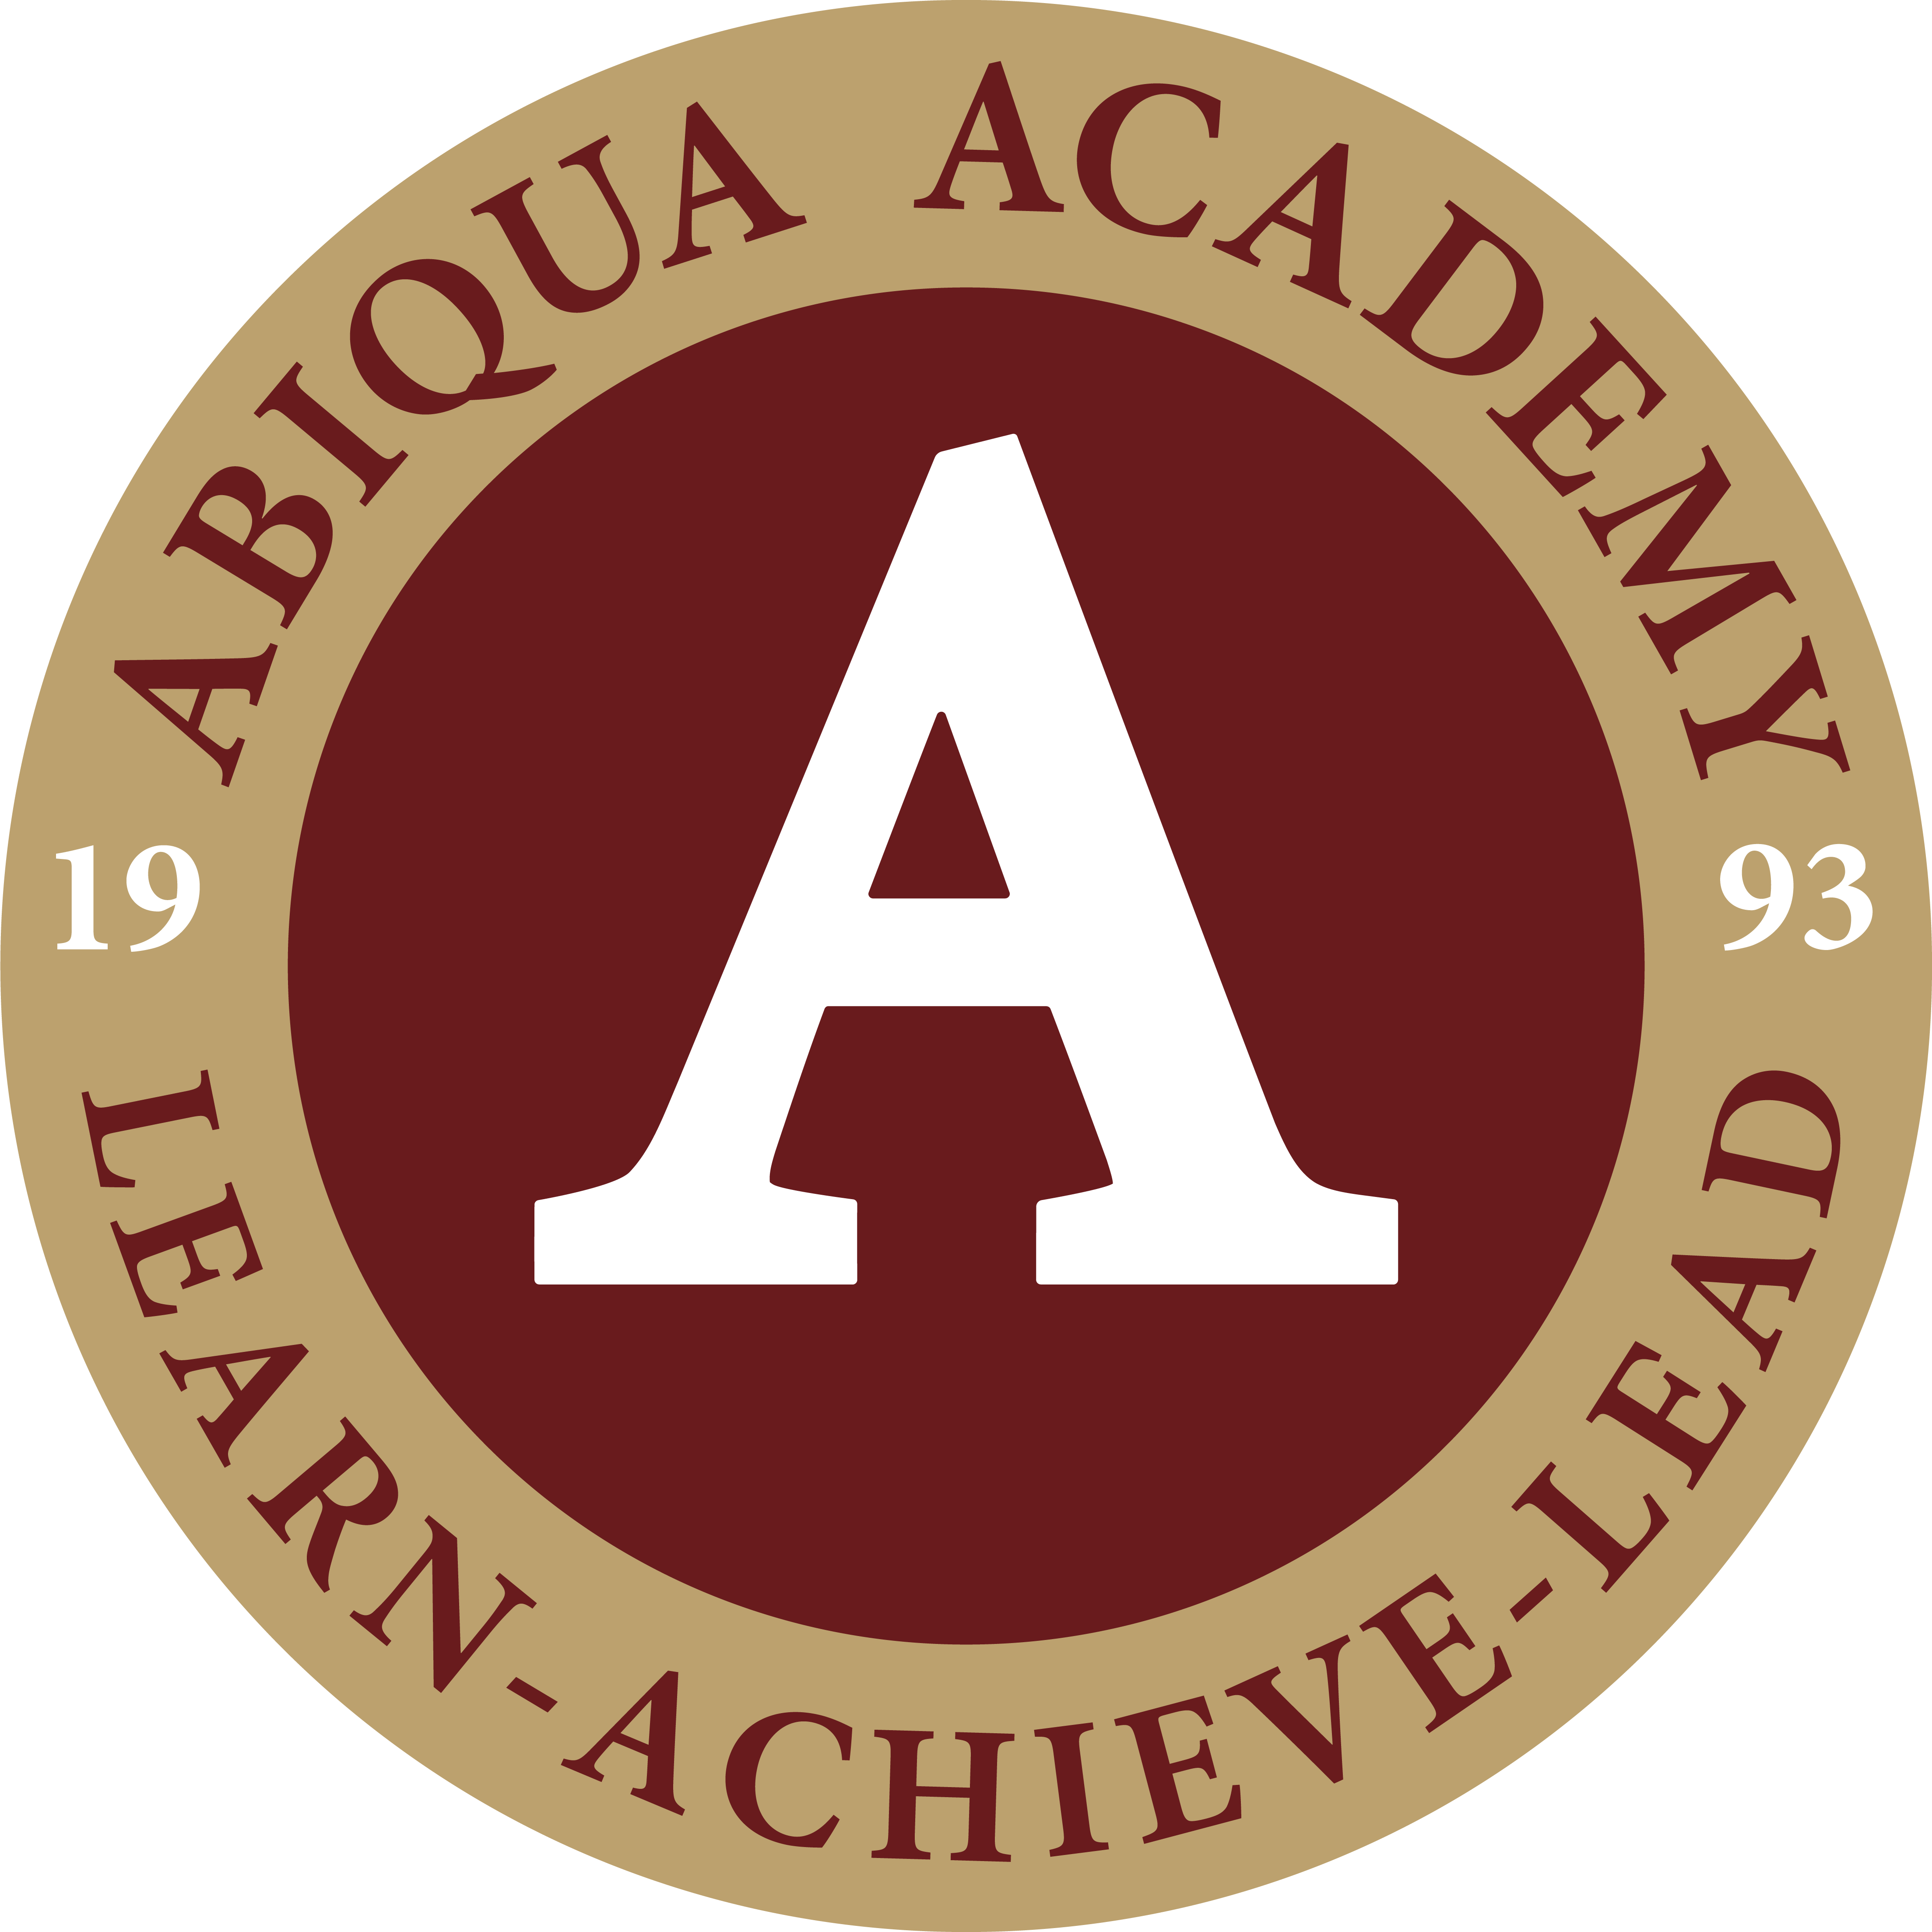 Abiqua Academy - 1993 - Learn, Achieve, Lead